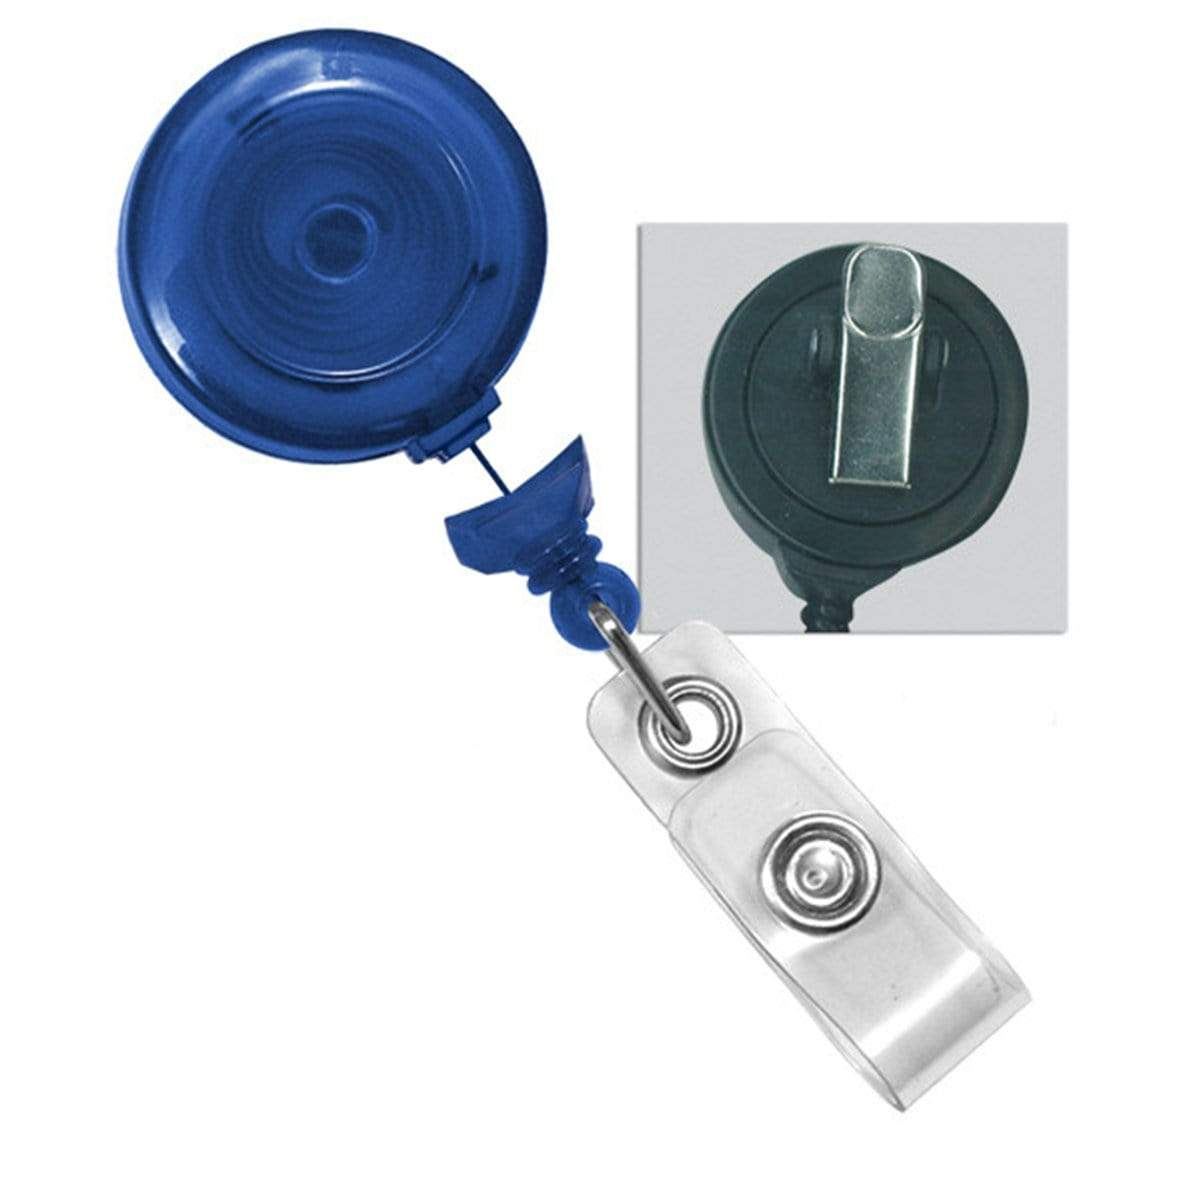 No Twist Badge Reel with a Swivel Spring Clip (P/N 2120-764X)